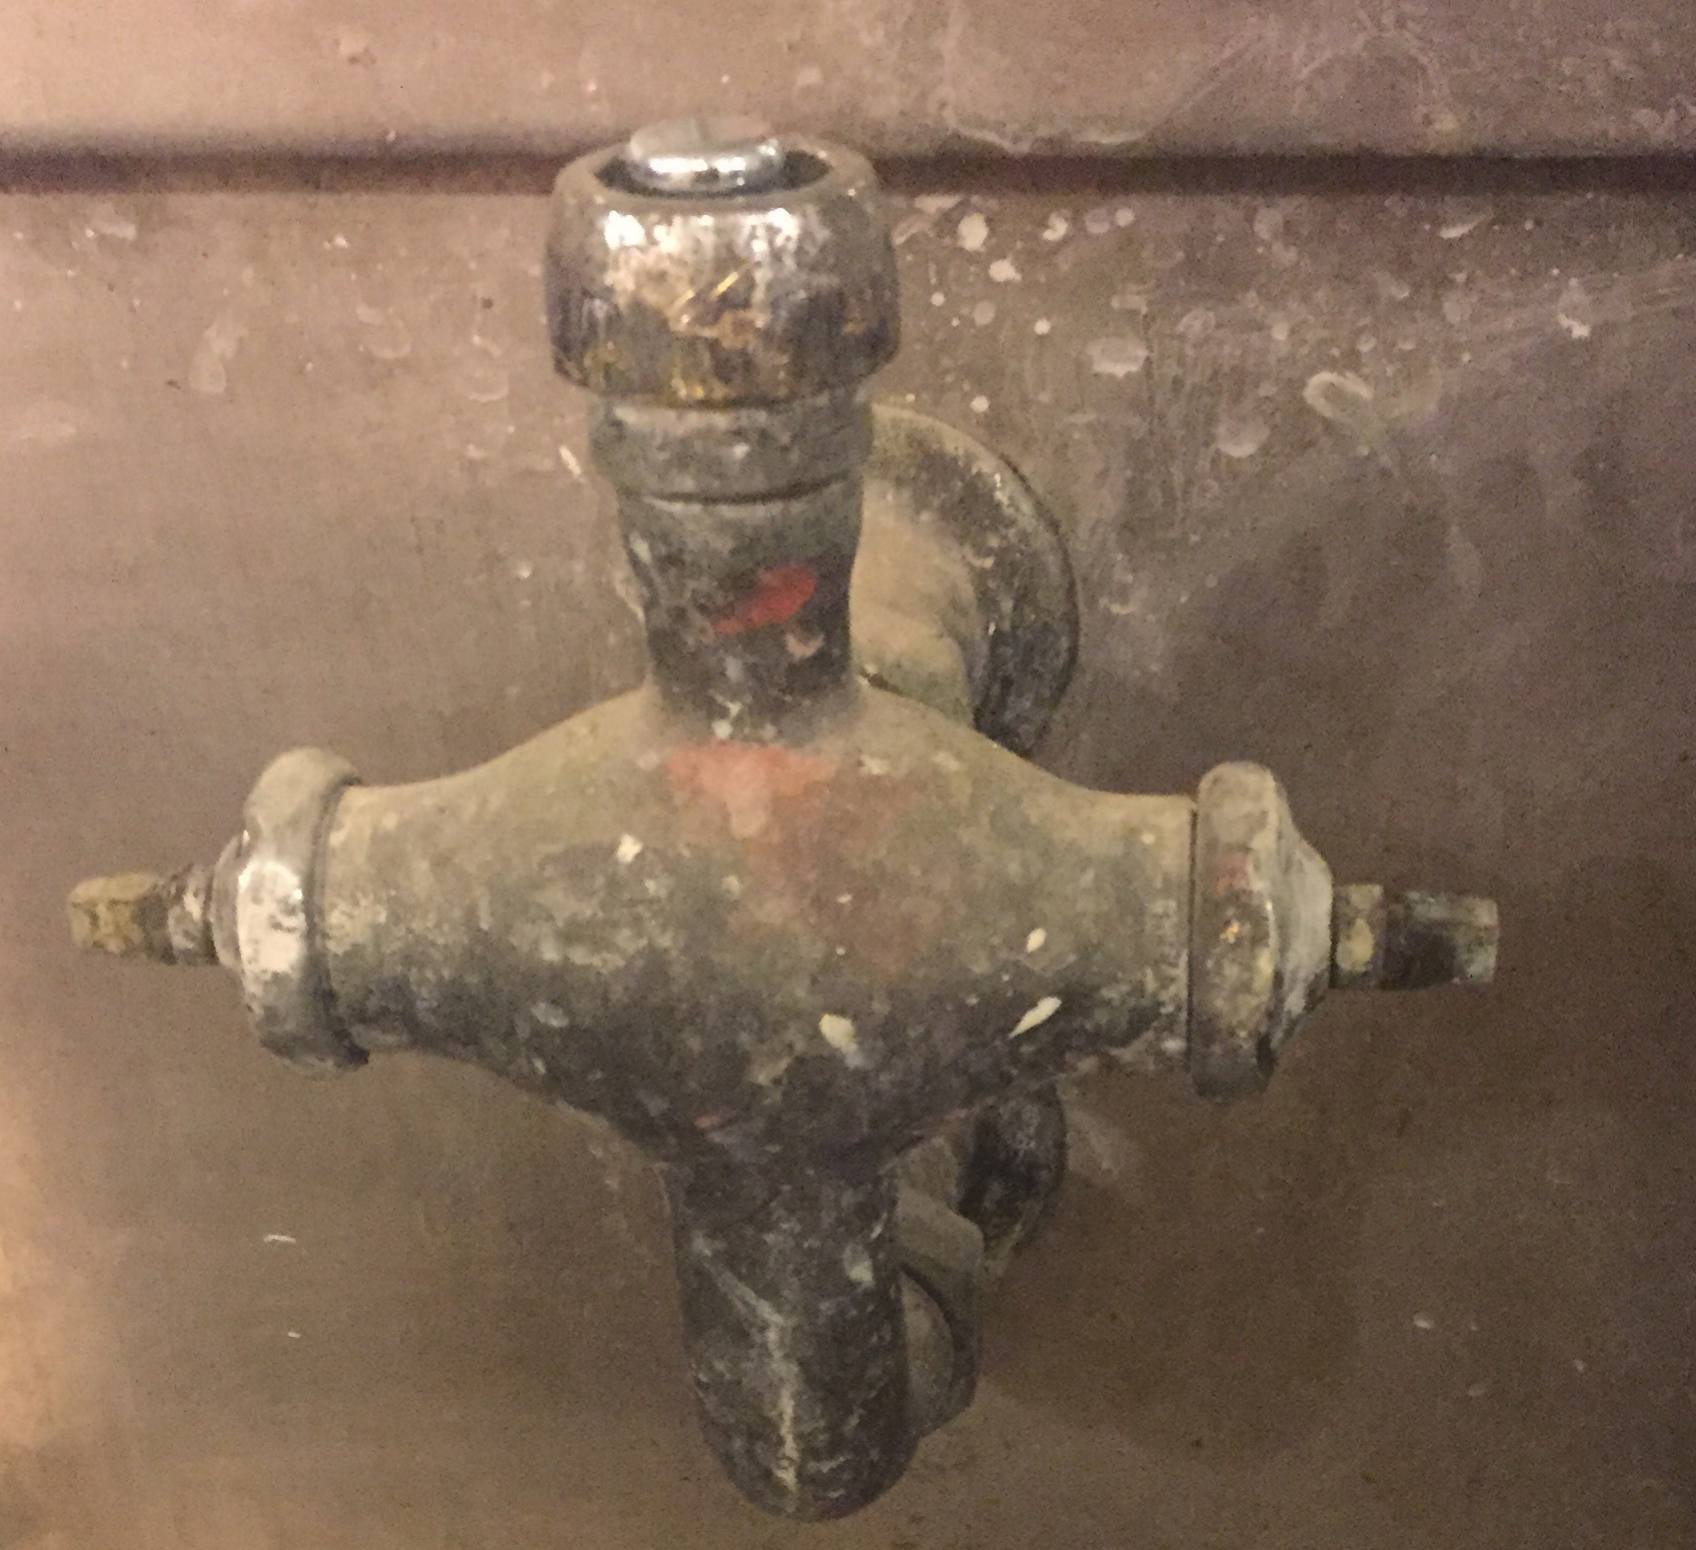 Faucets in the kiln room that tested at high levels. It has since been taken apart and plugged up to prevent accidental use.